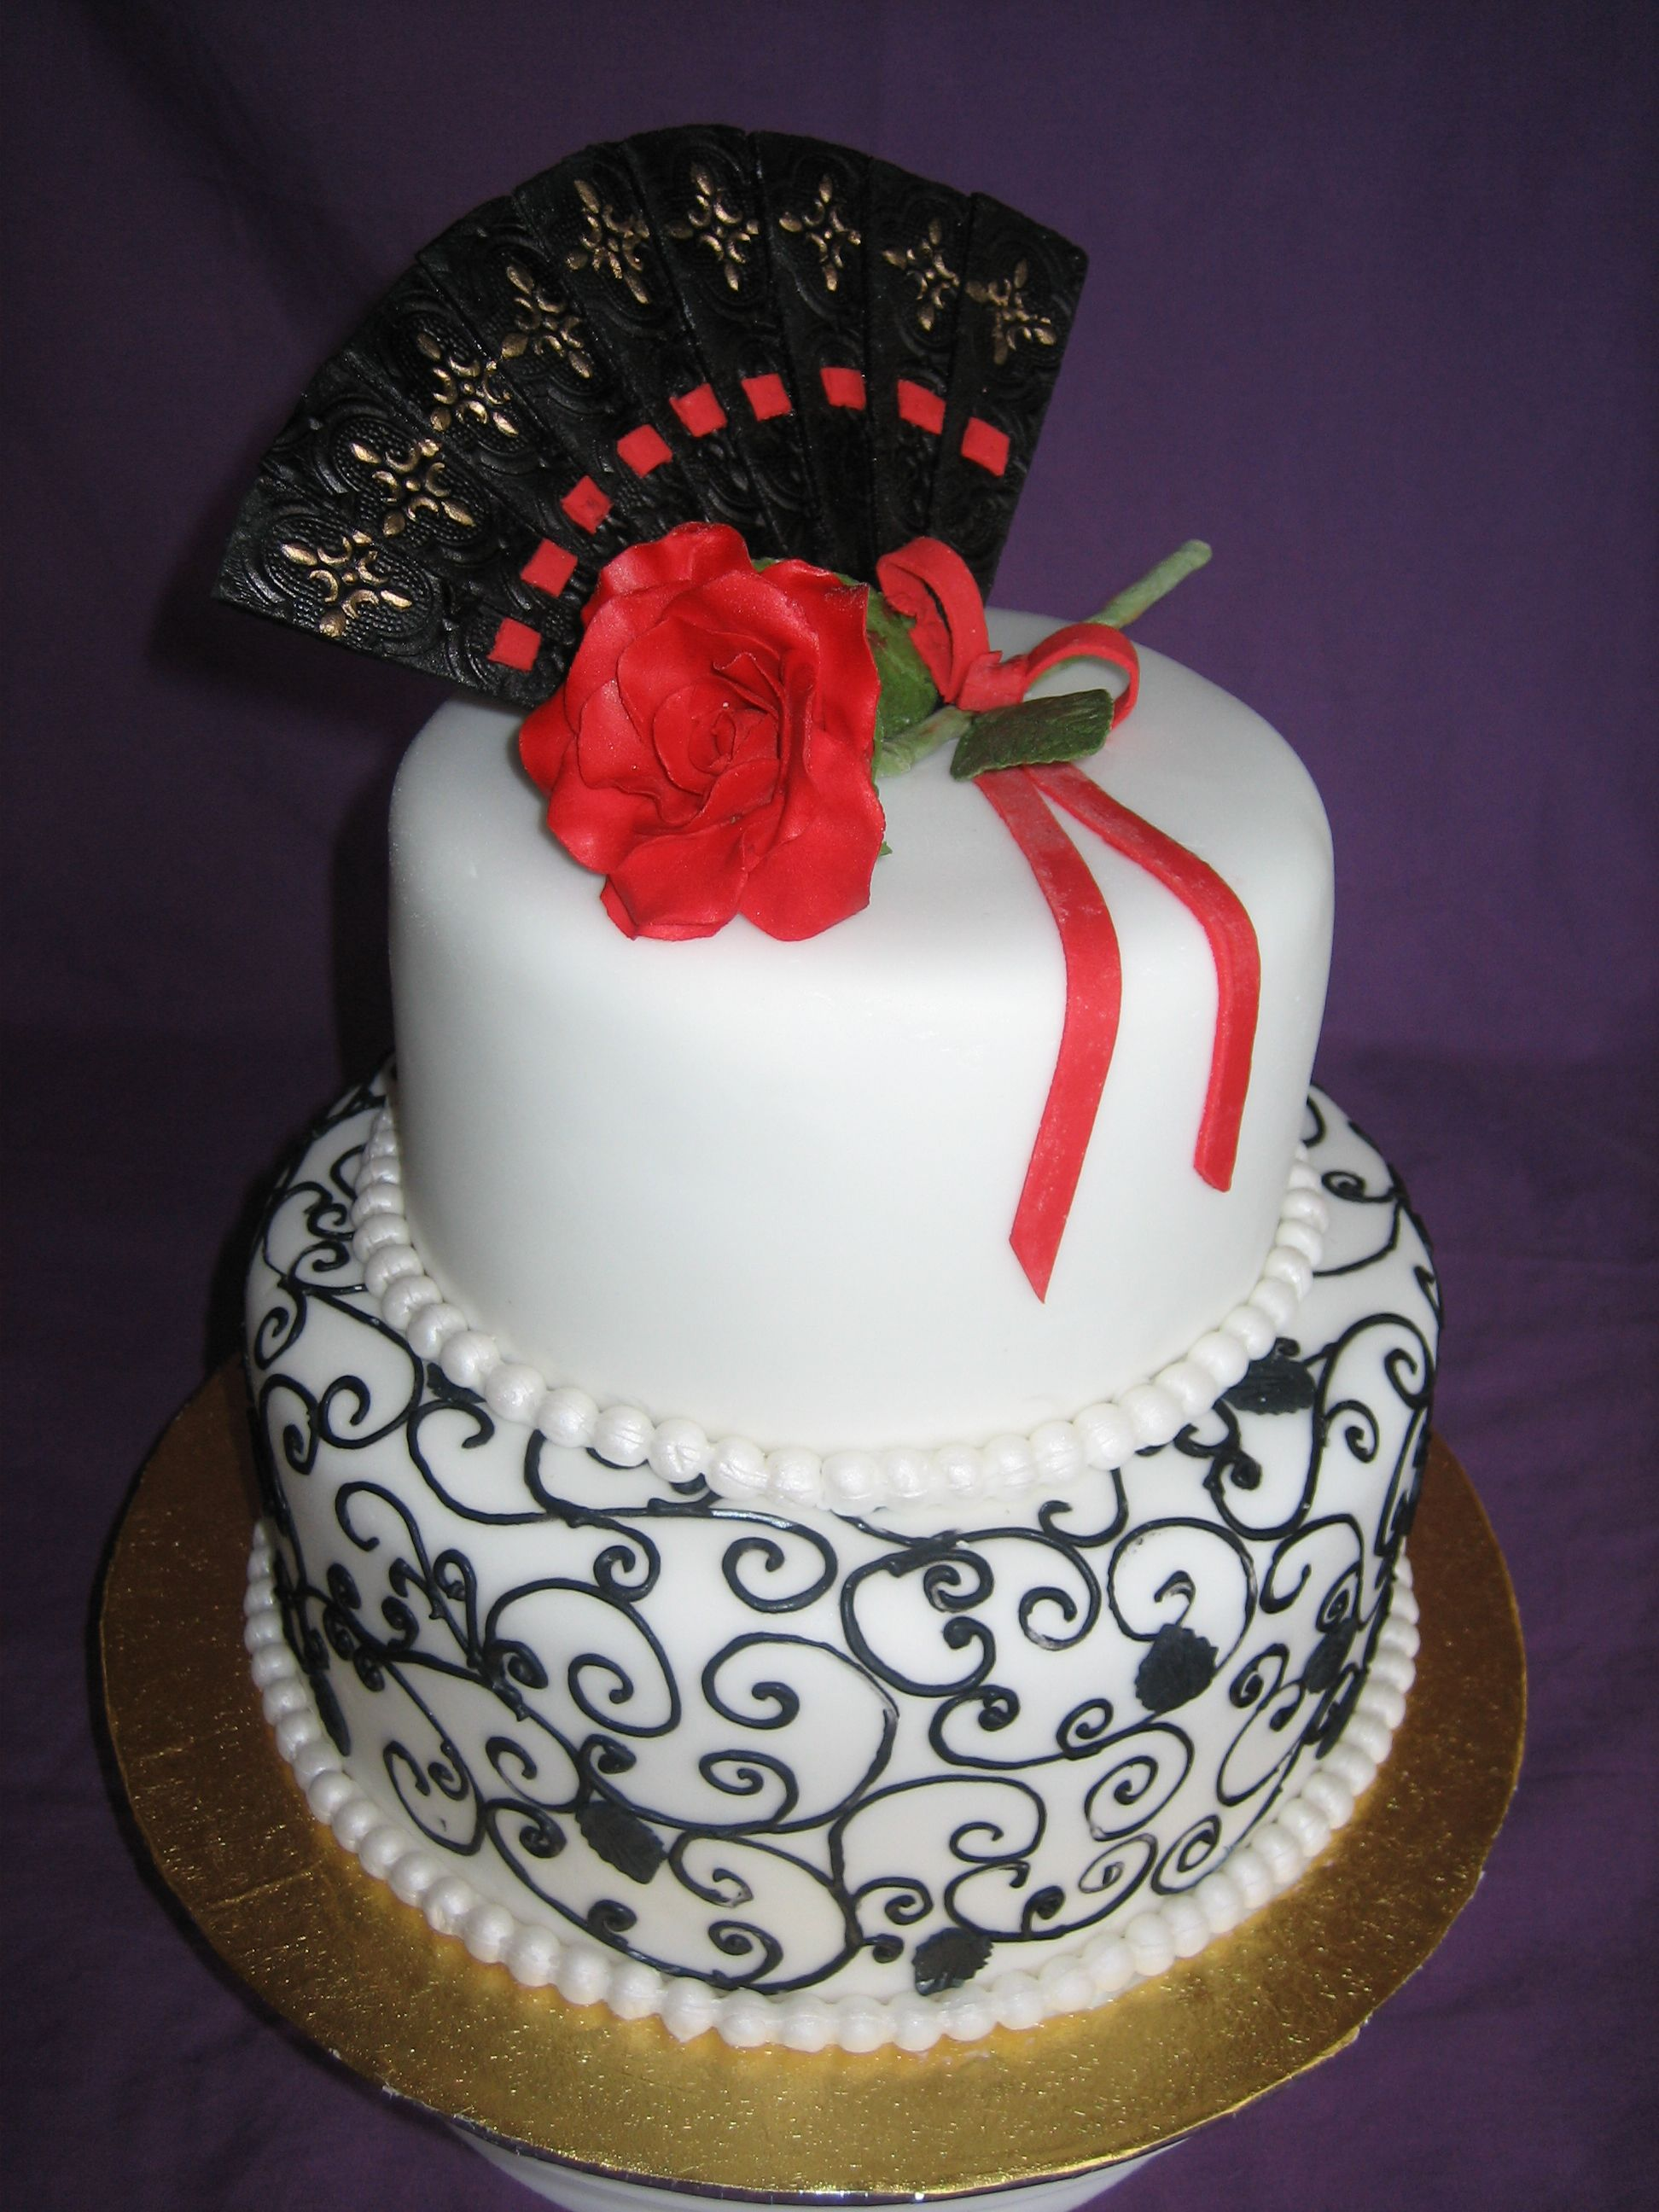 Spanish Fan Rose 2 Tier Mud Cake With Sugarpaste Rose And